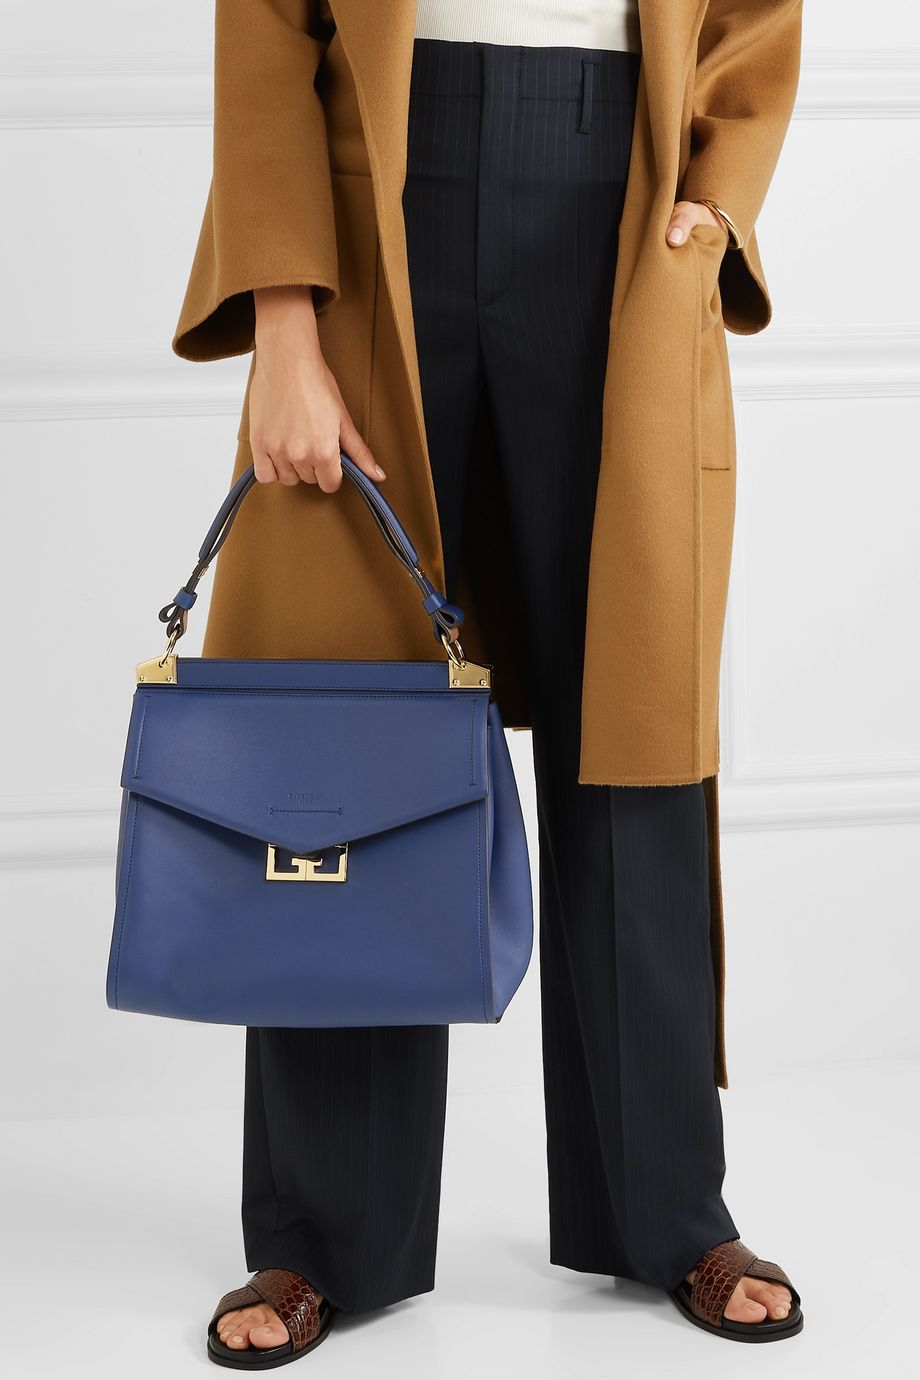 Givenchy Mystic medium leather tote